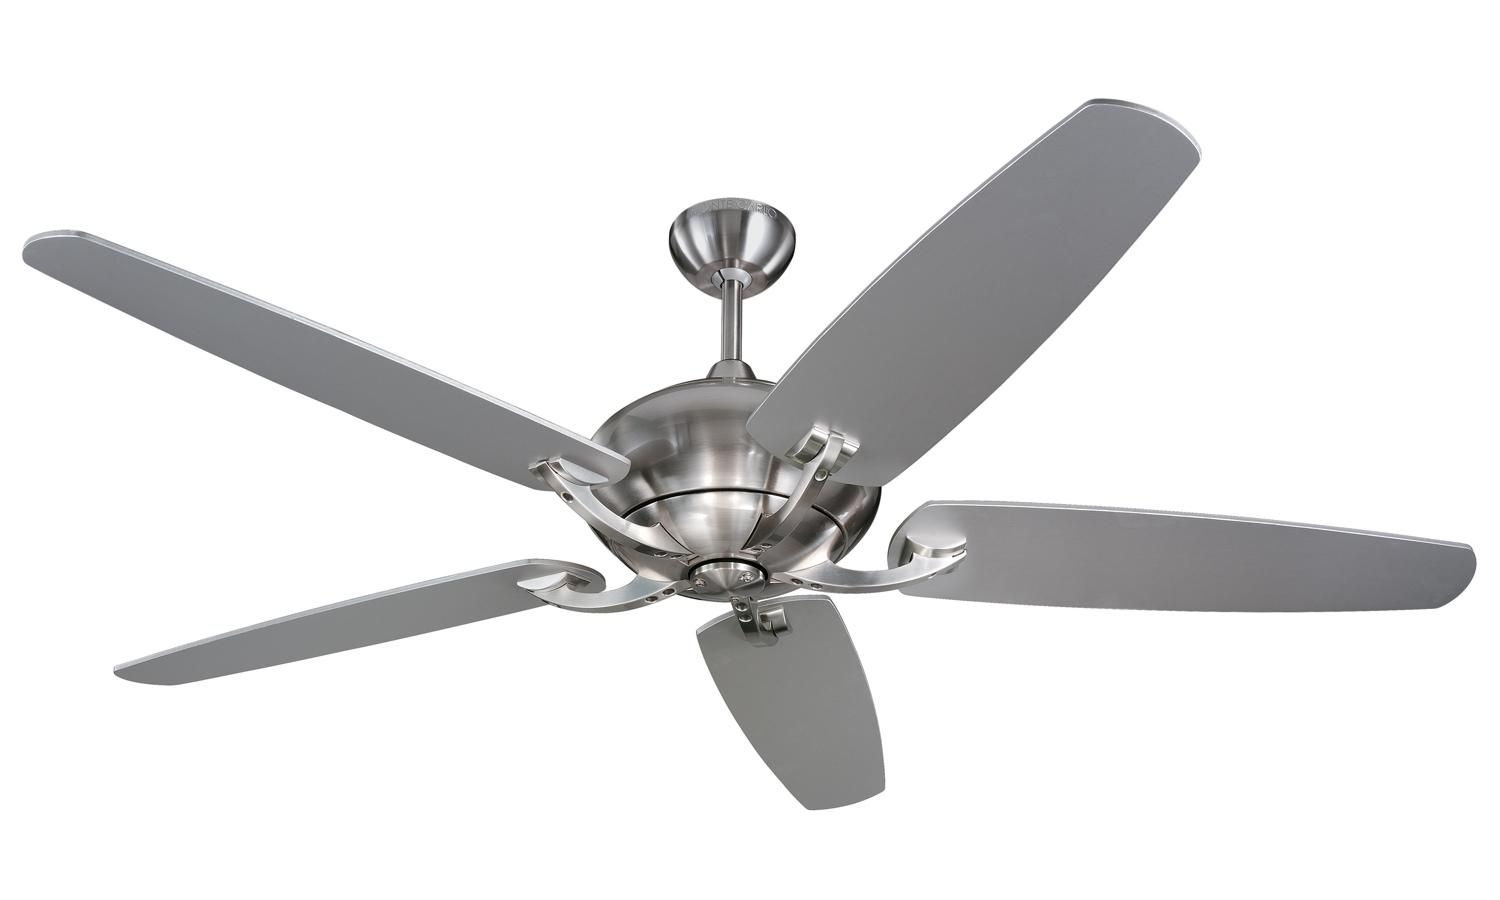 Brass Ceiling Fans Without Lights Ceiling Fans Without Lights Stainless Steel Ceiling Fan Hugger Ceiling Fan